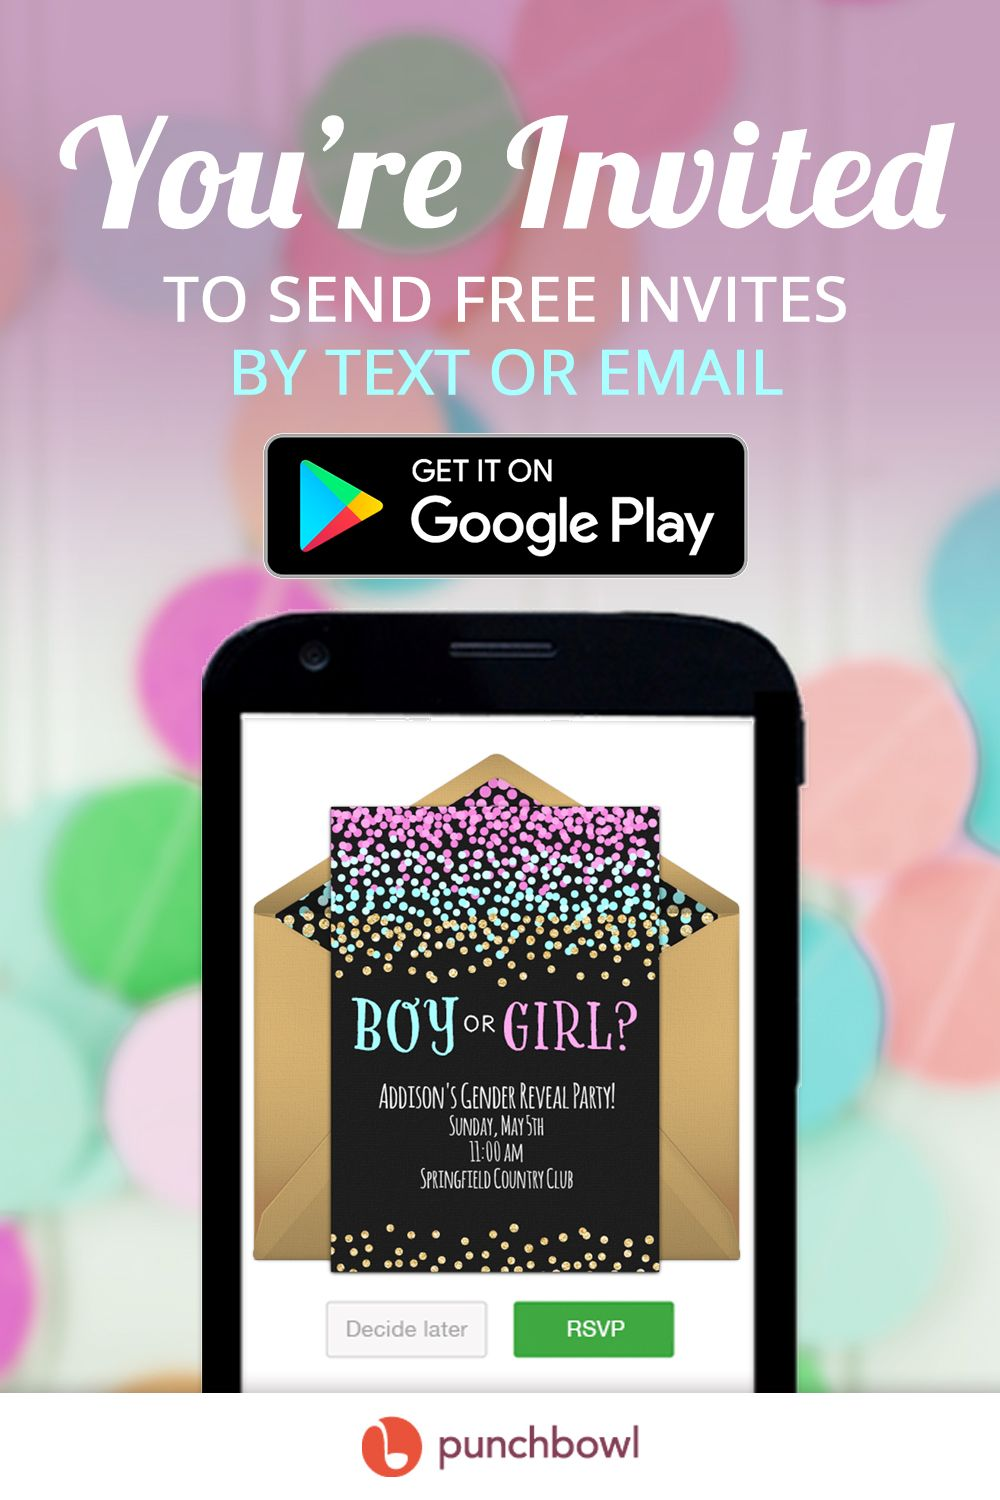 Send free Gender Reveal invitations by text message right